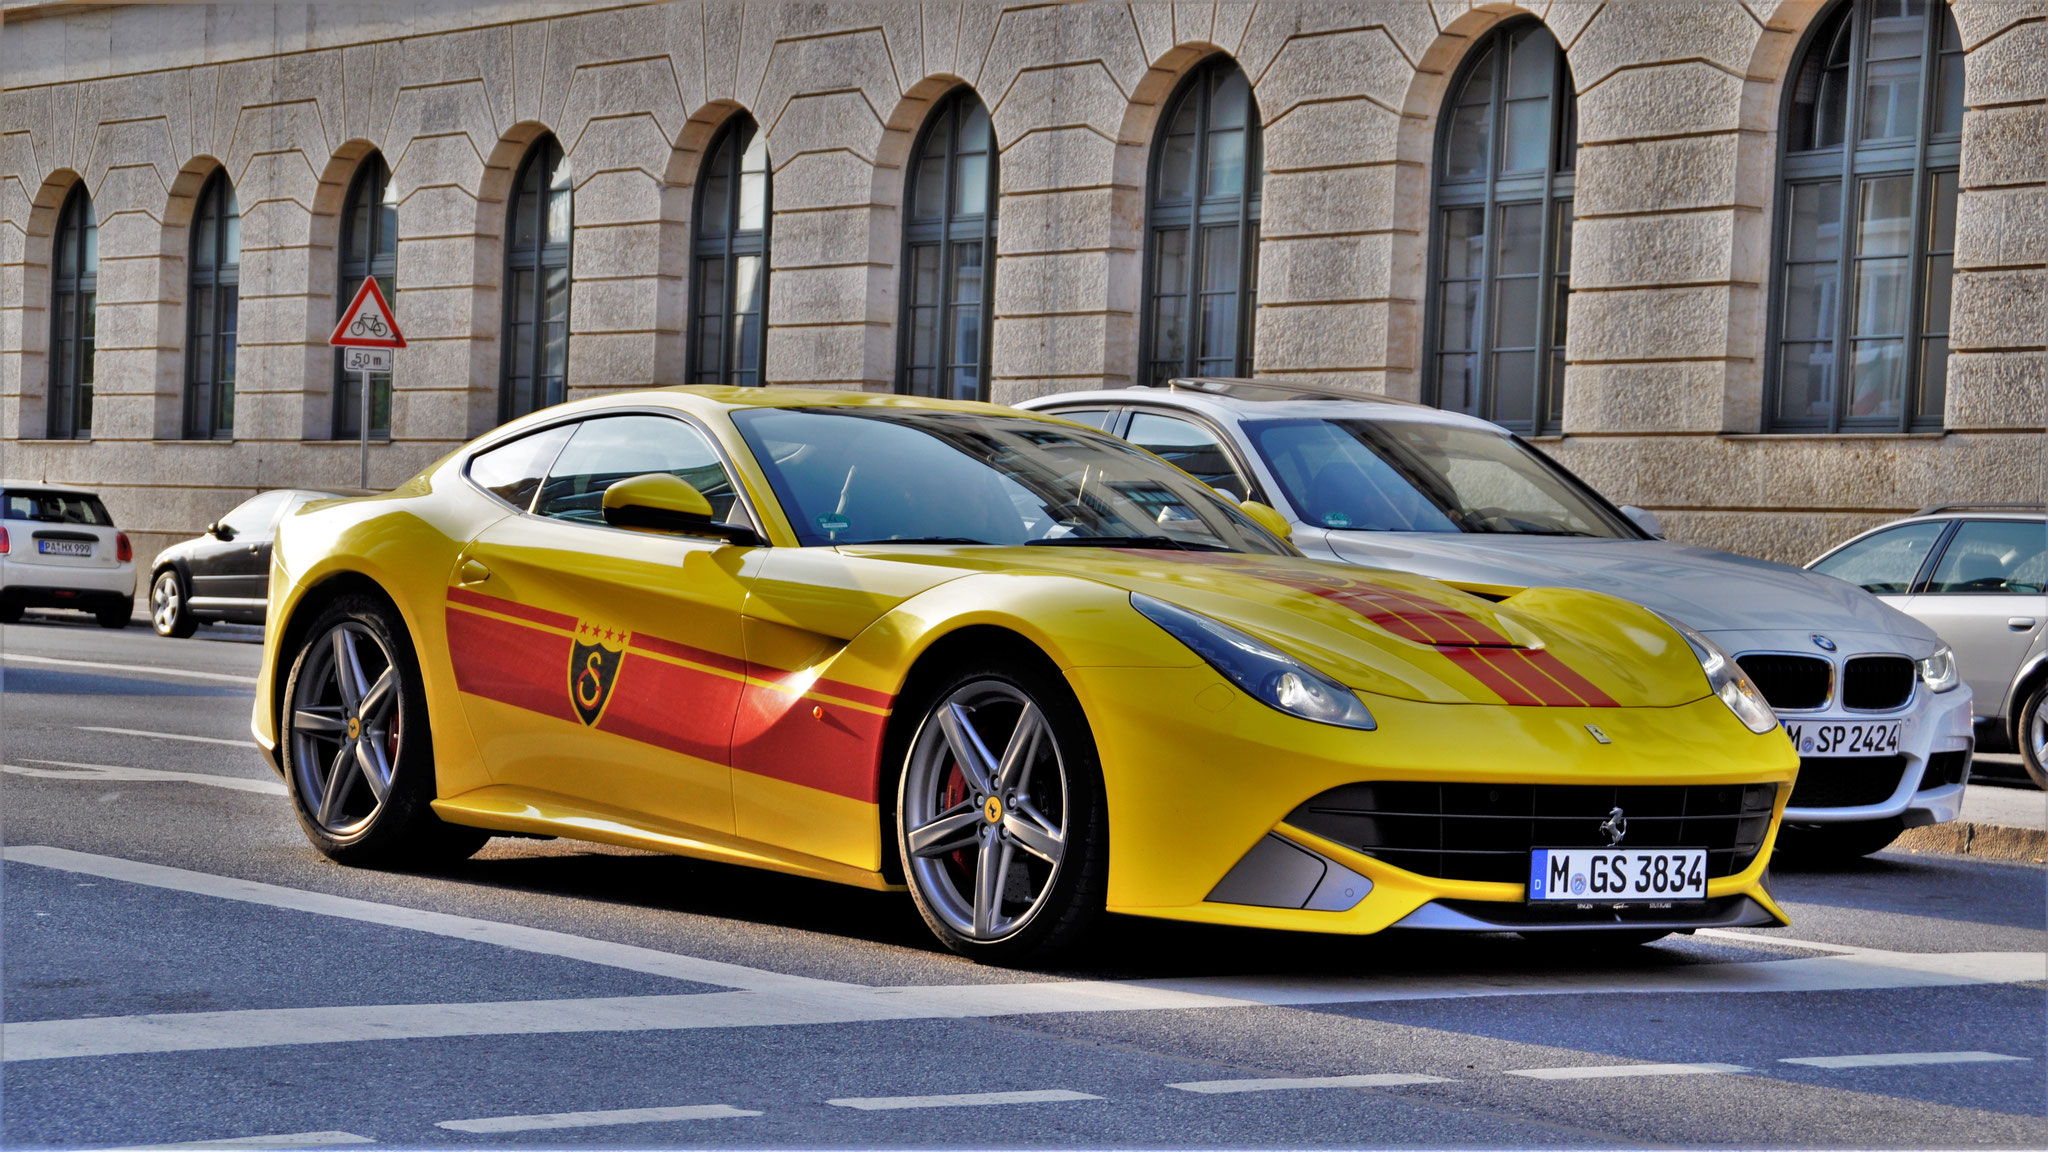 Ferrari F12 Berlinetta - M-GS-3834